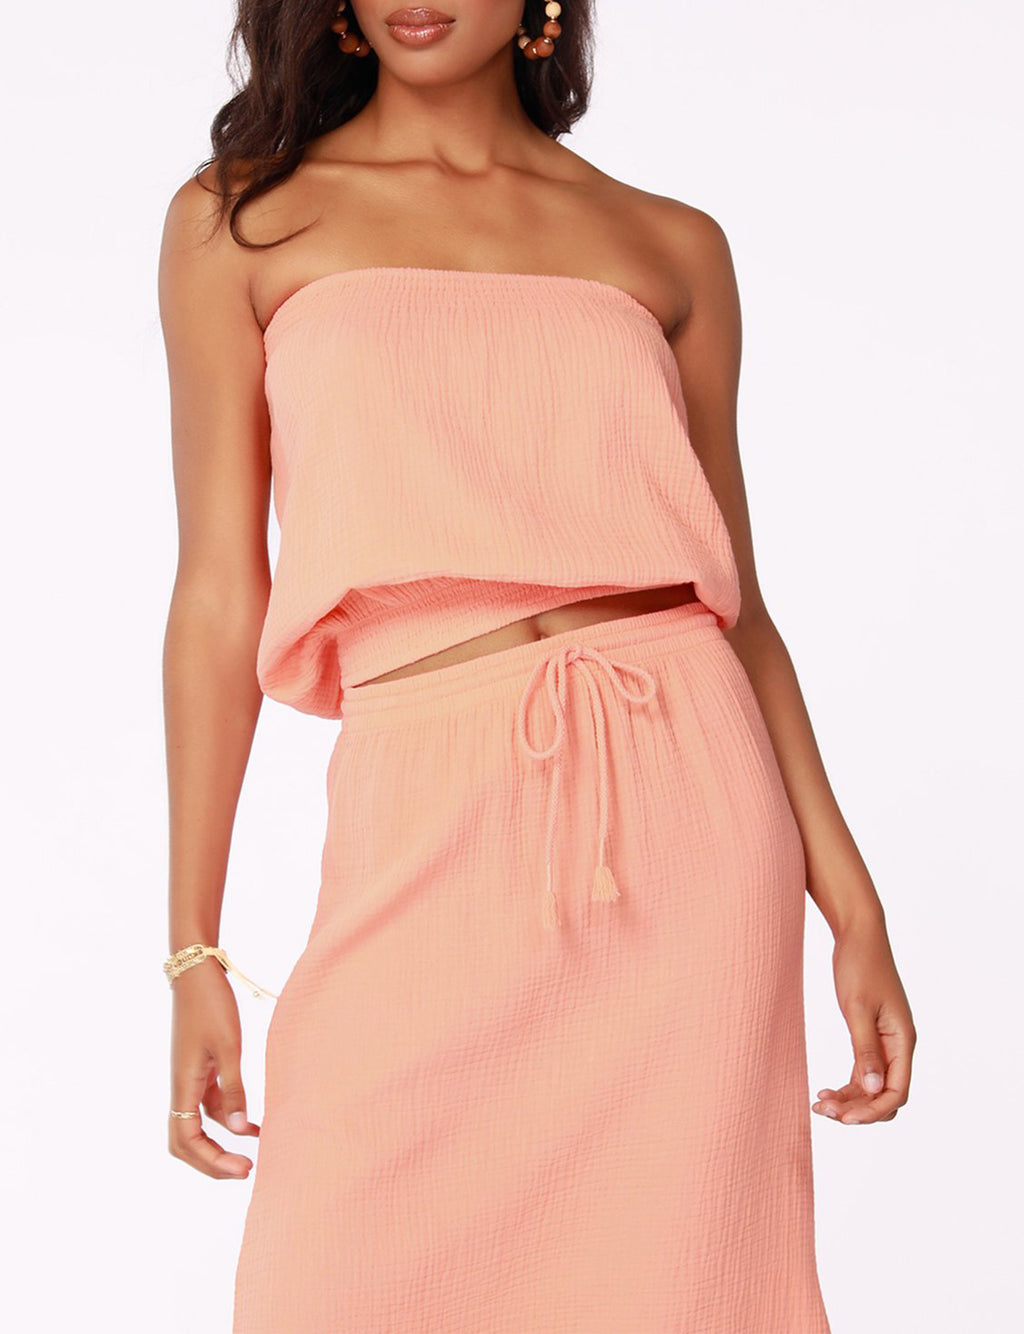 Strapless Blouse in Guava